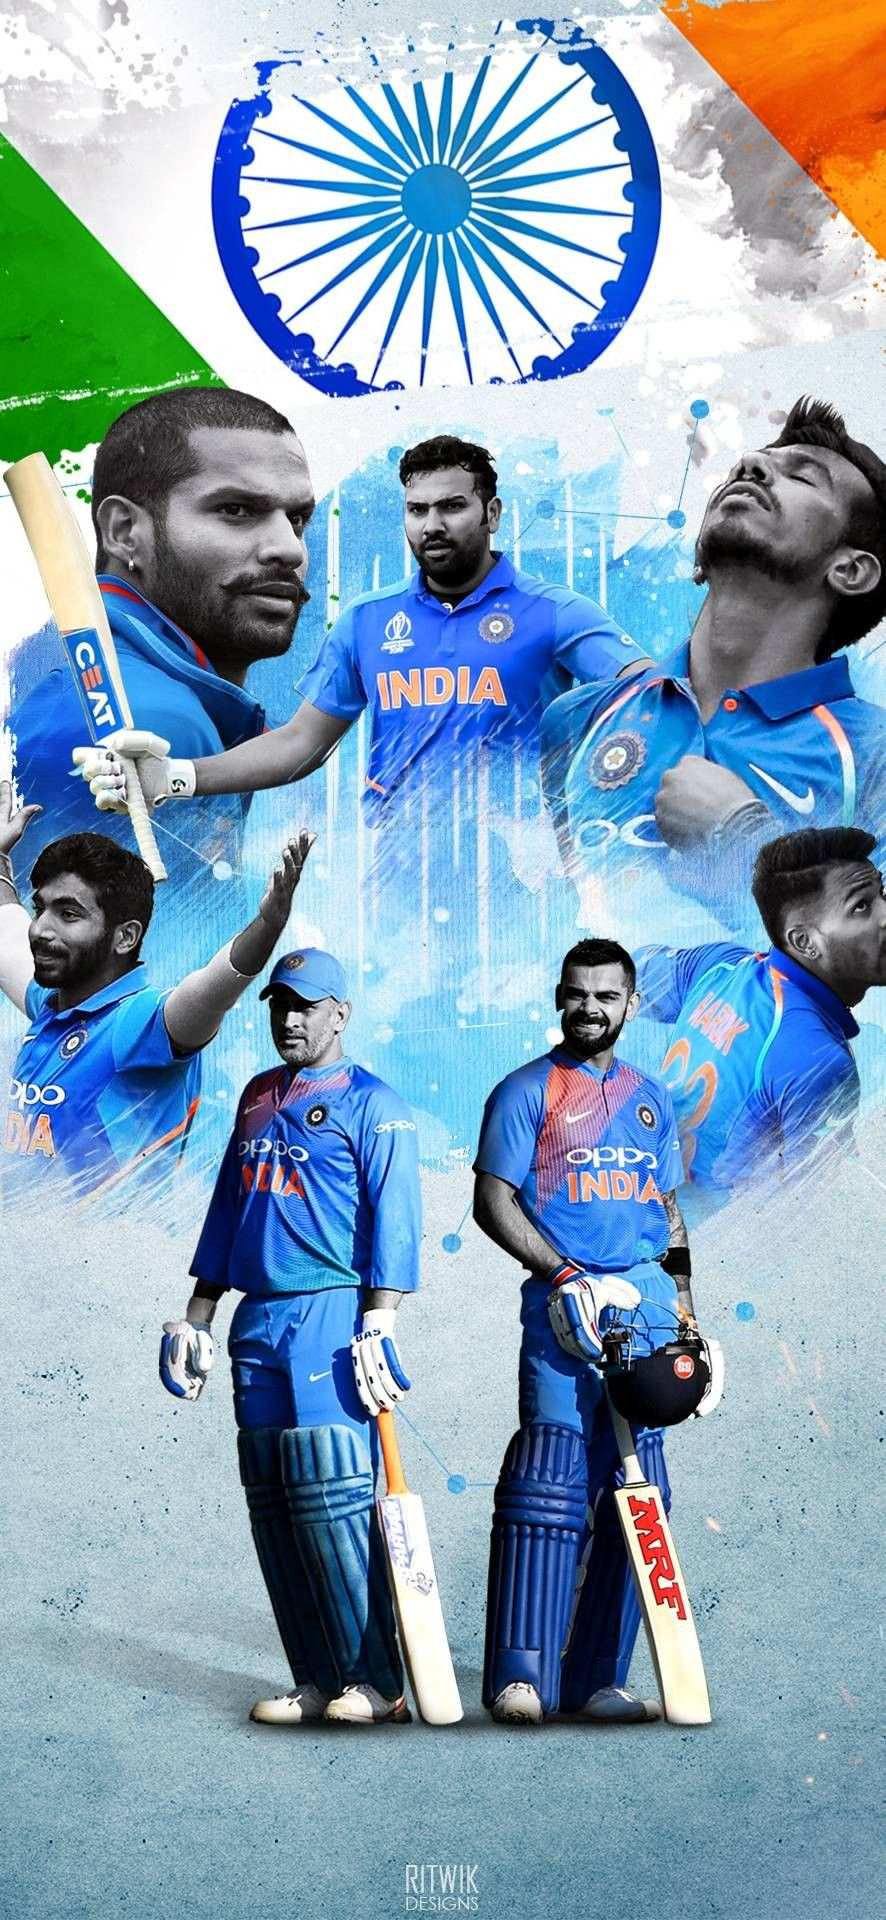 TEAM INDIA in 2020 Cricket wallpapers, Cricket poster